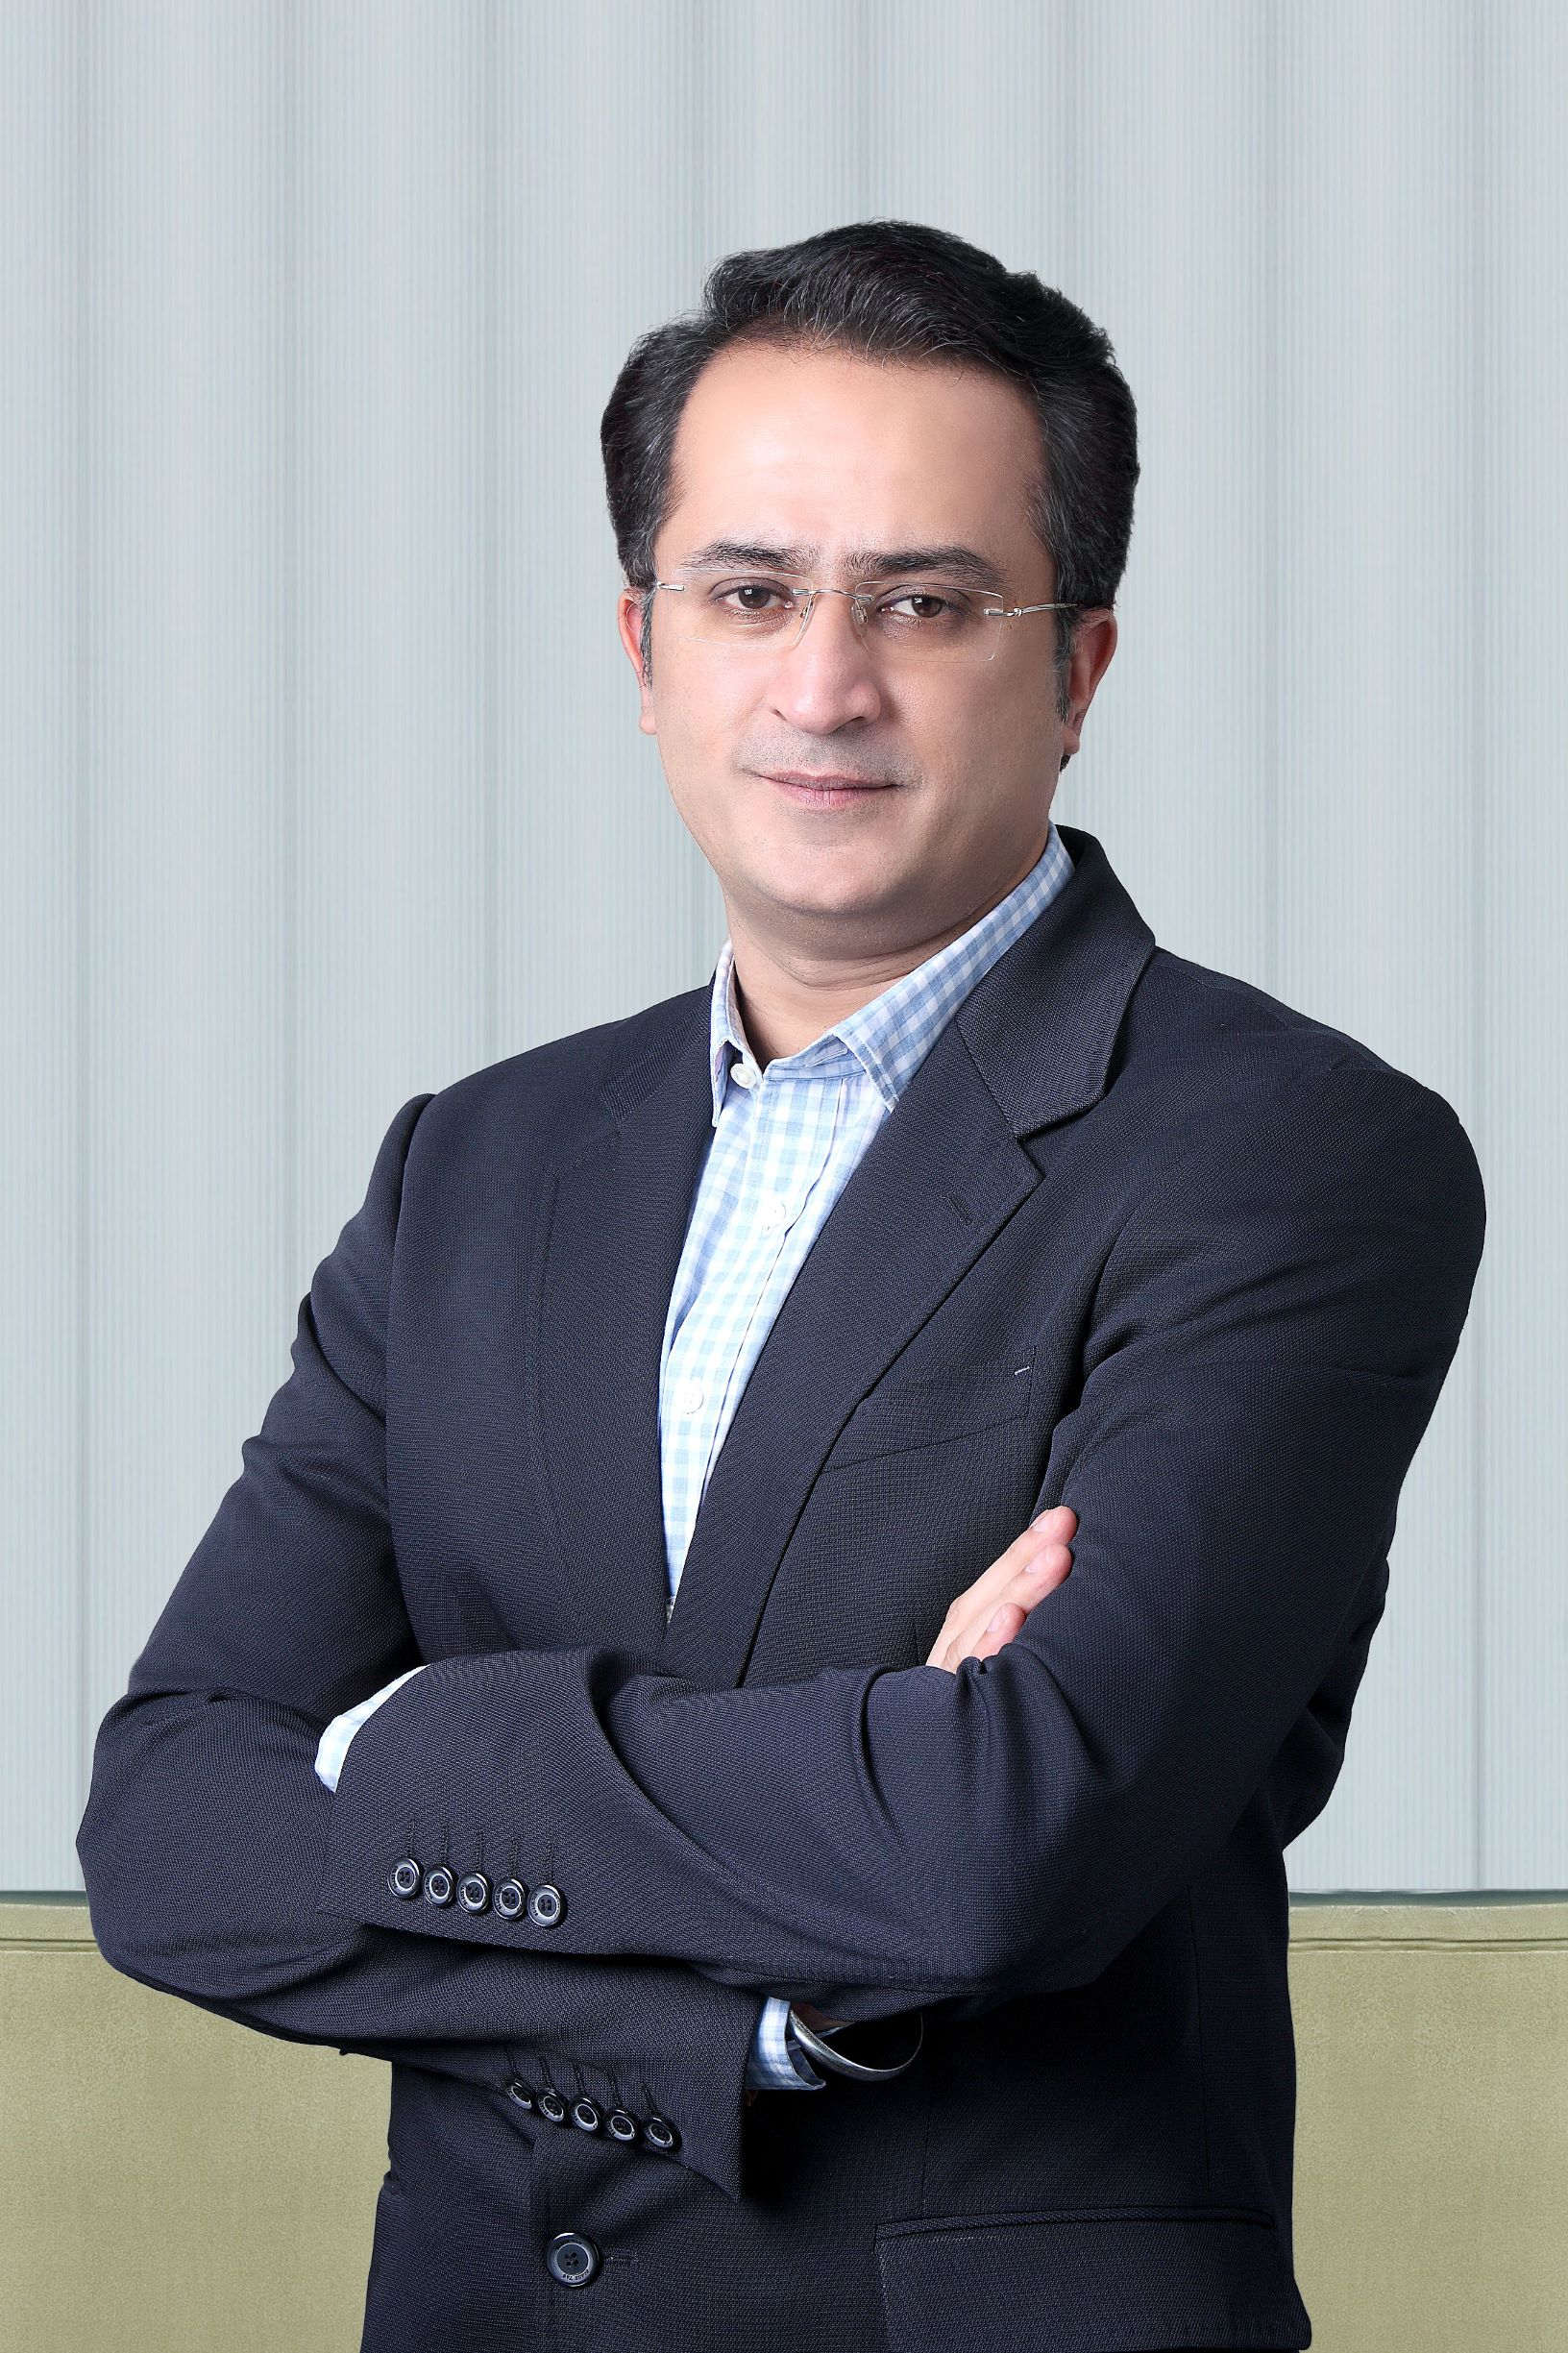 Vikram Malhotra - CEO, Abundantia Entertainment